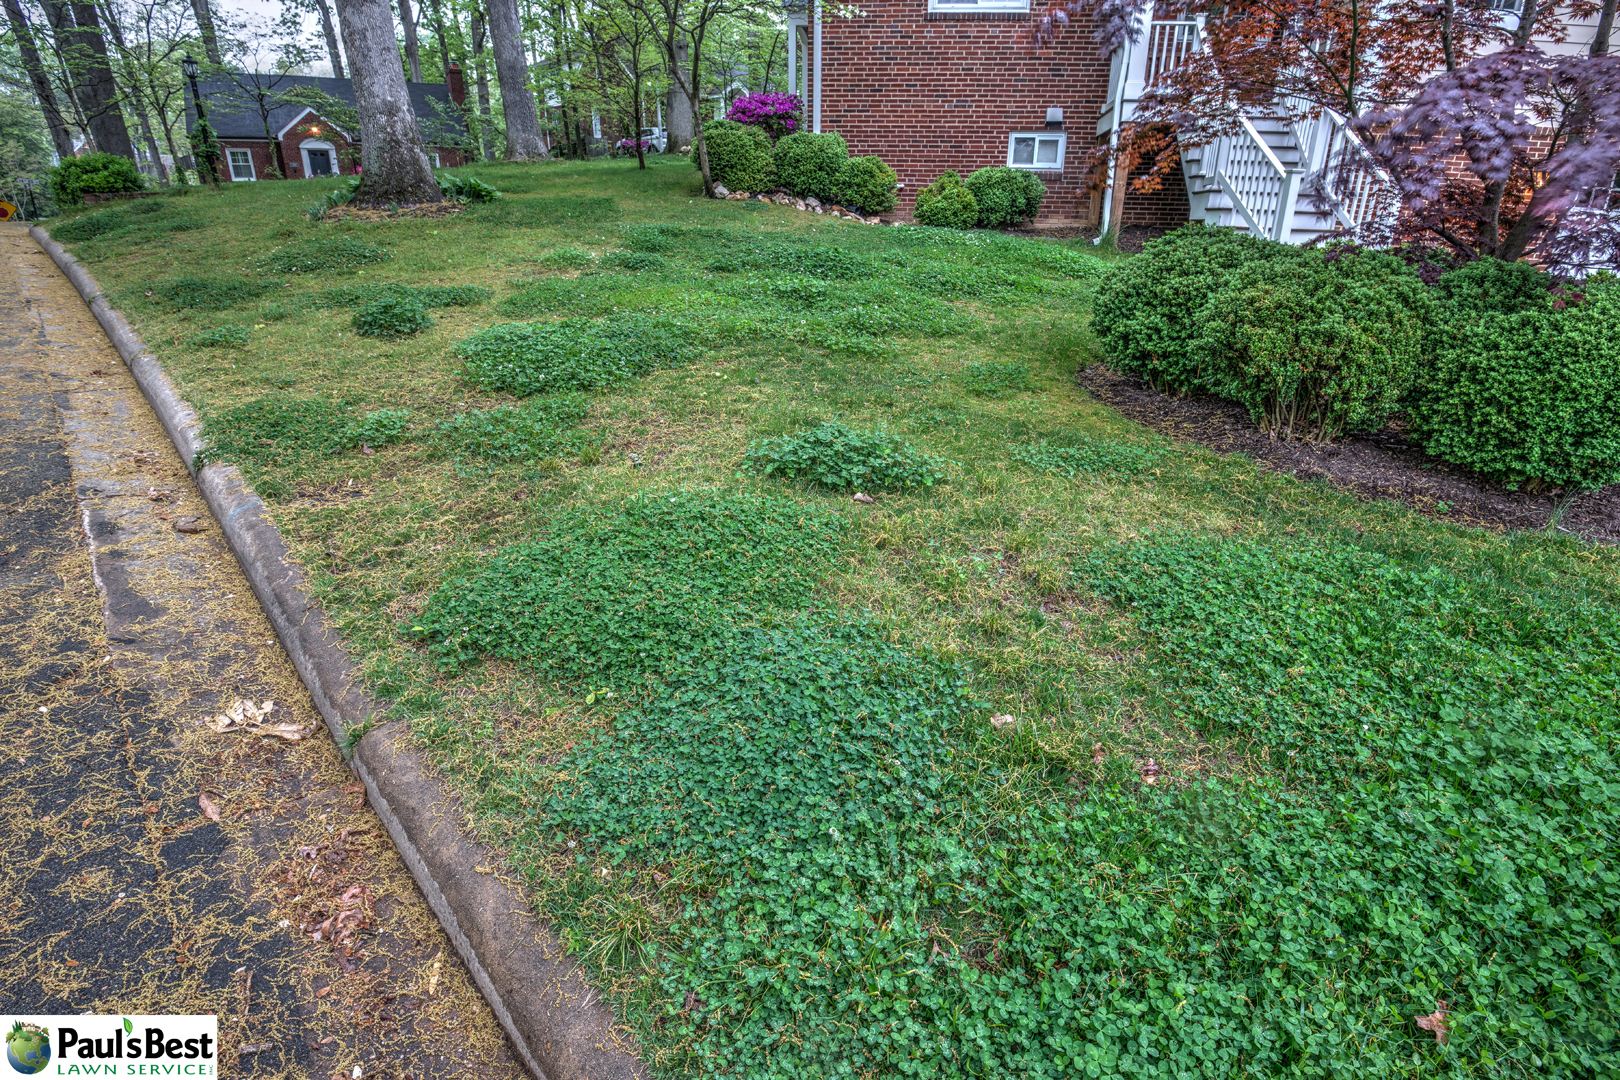 https://paulsbestlawn.com/pbls-img/portfolio/other-services/before-and-after/web-ready/large/BAOS1-l-After-Sodding-Front-Yard.jpg